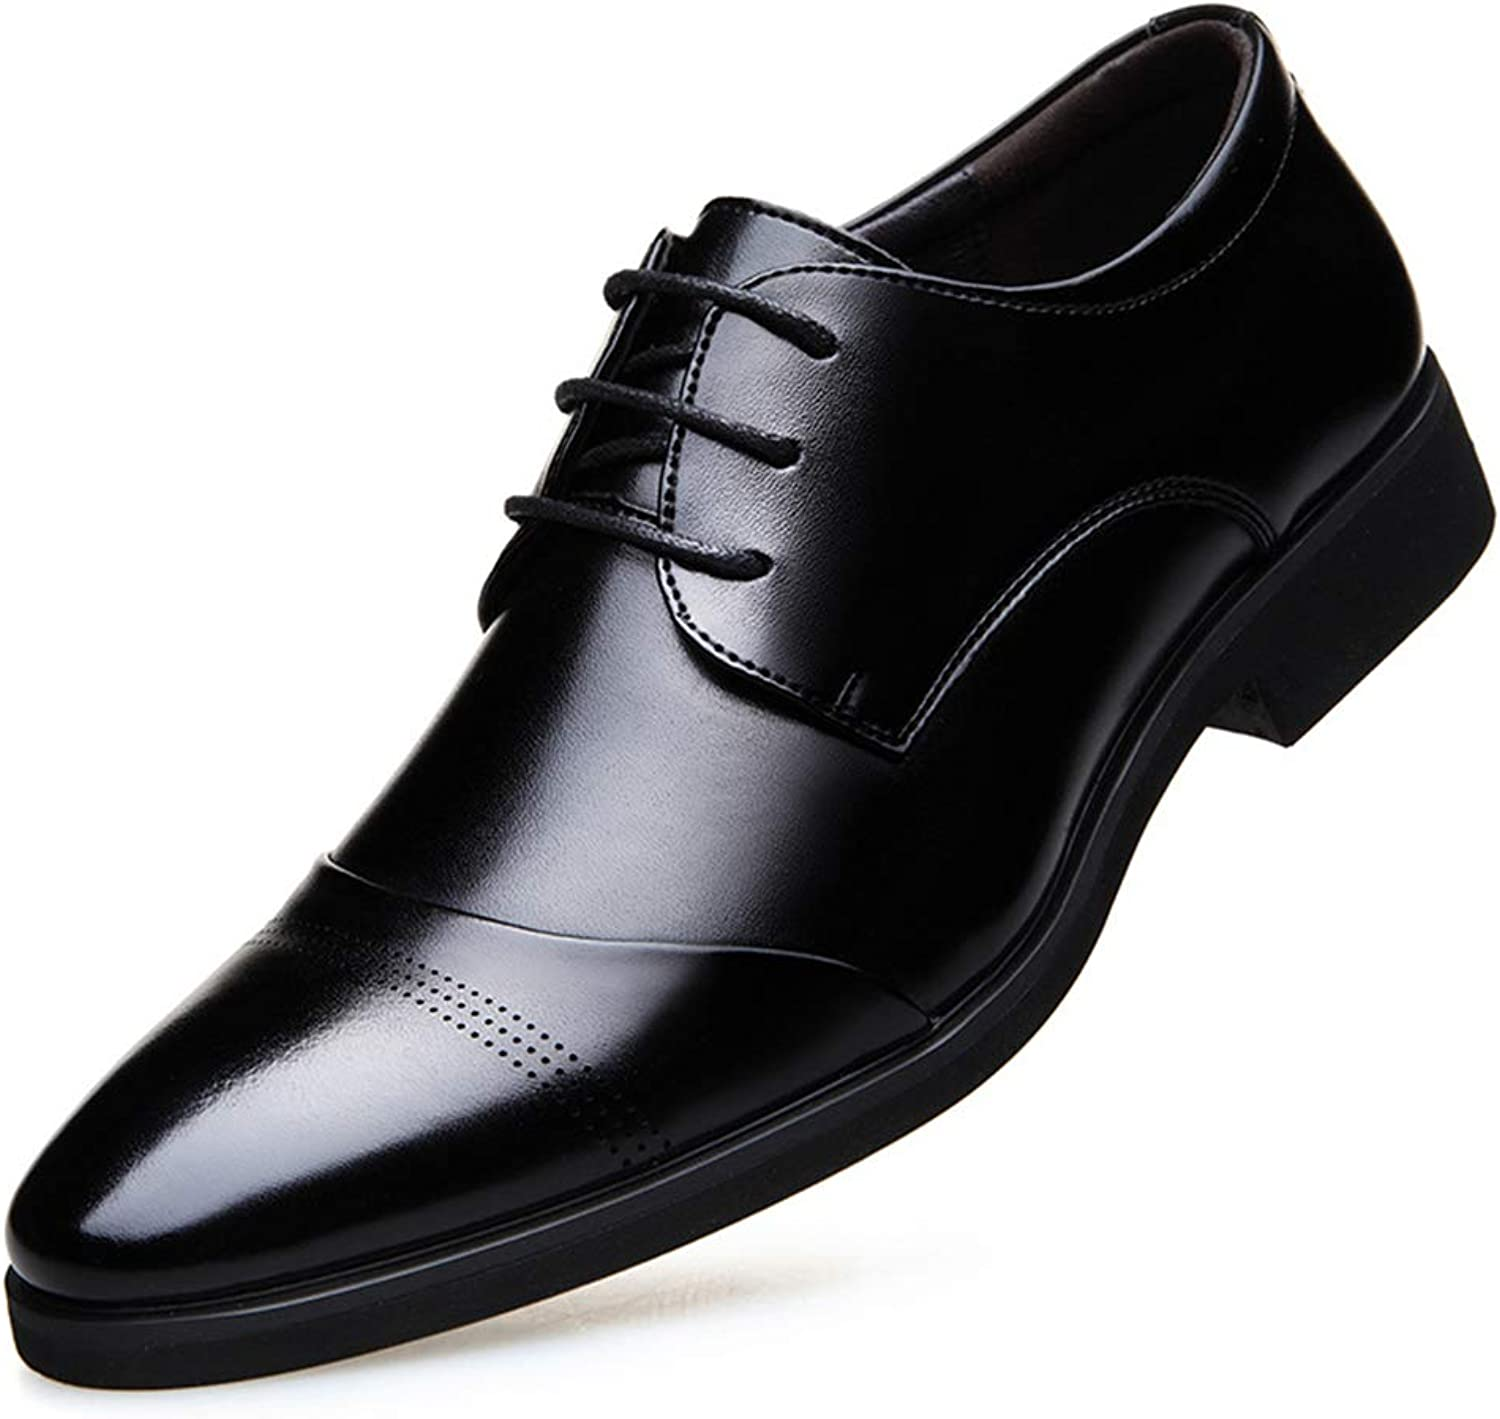 Men's Business Leather shoes Pointed Formal shoes Wedding Prom shoes Fashion Party & Evening Leather shoes,A,43